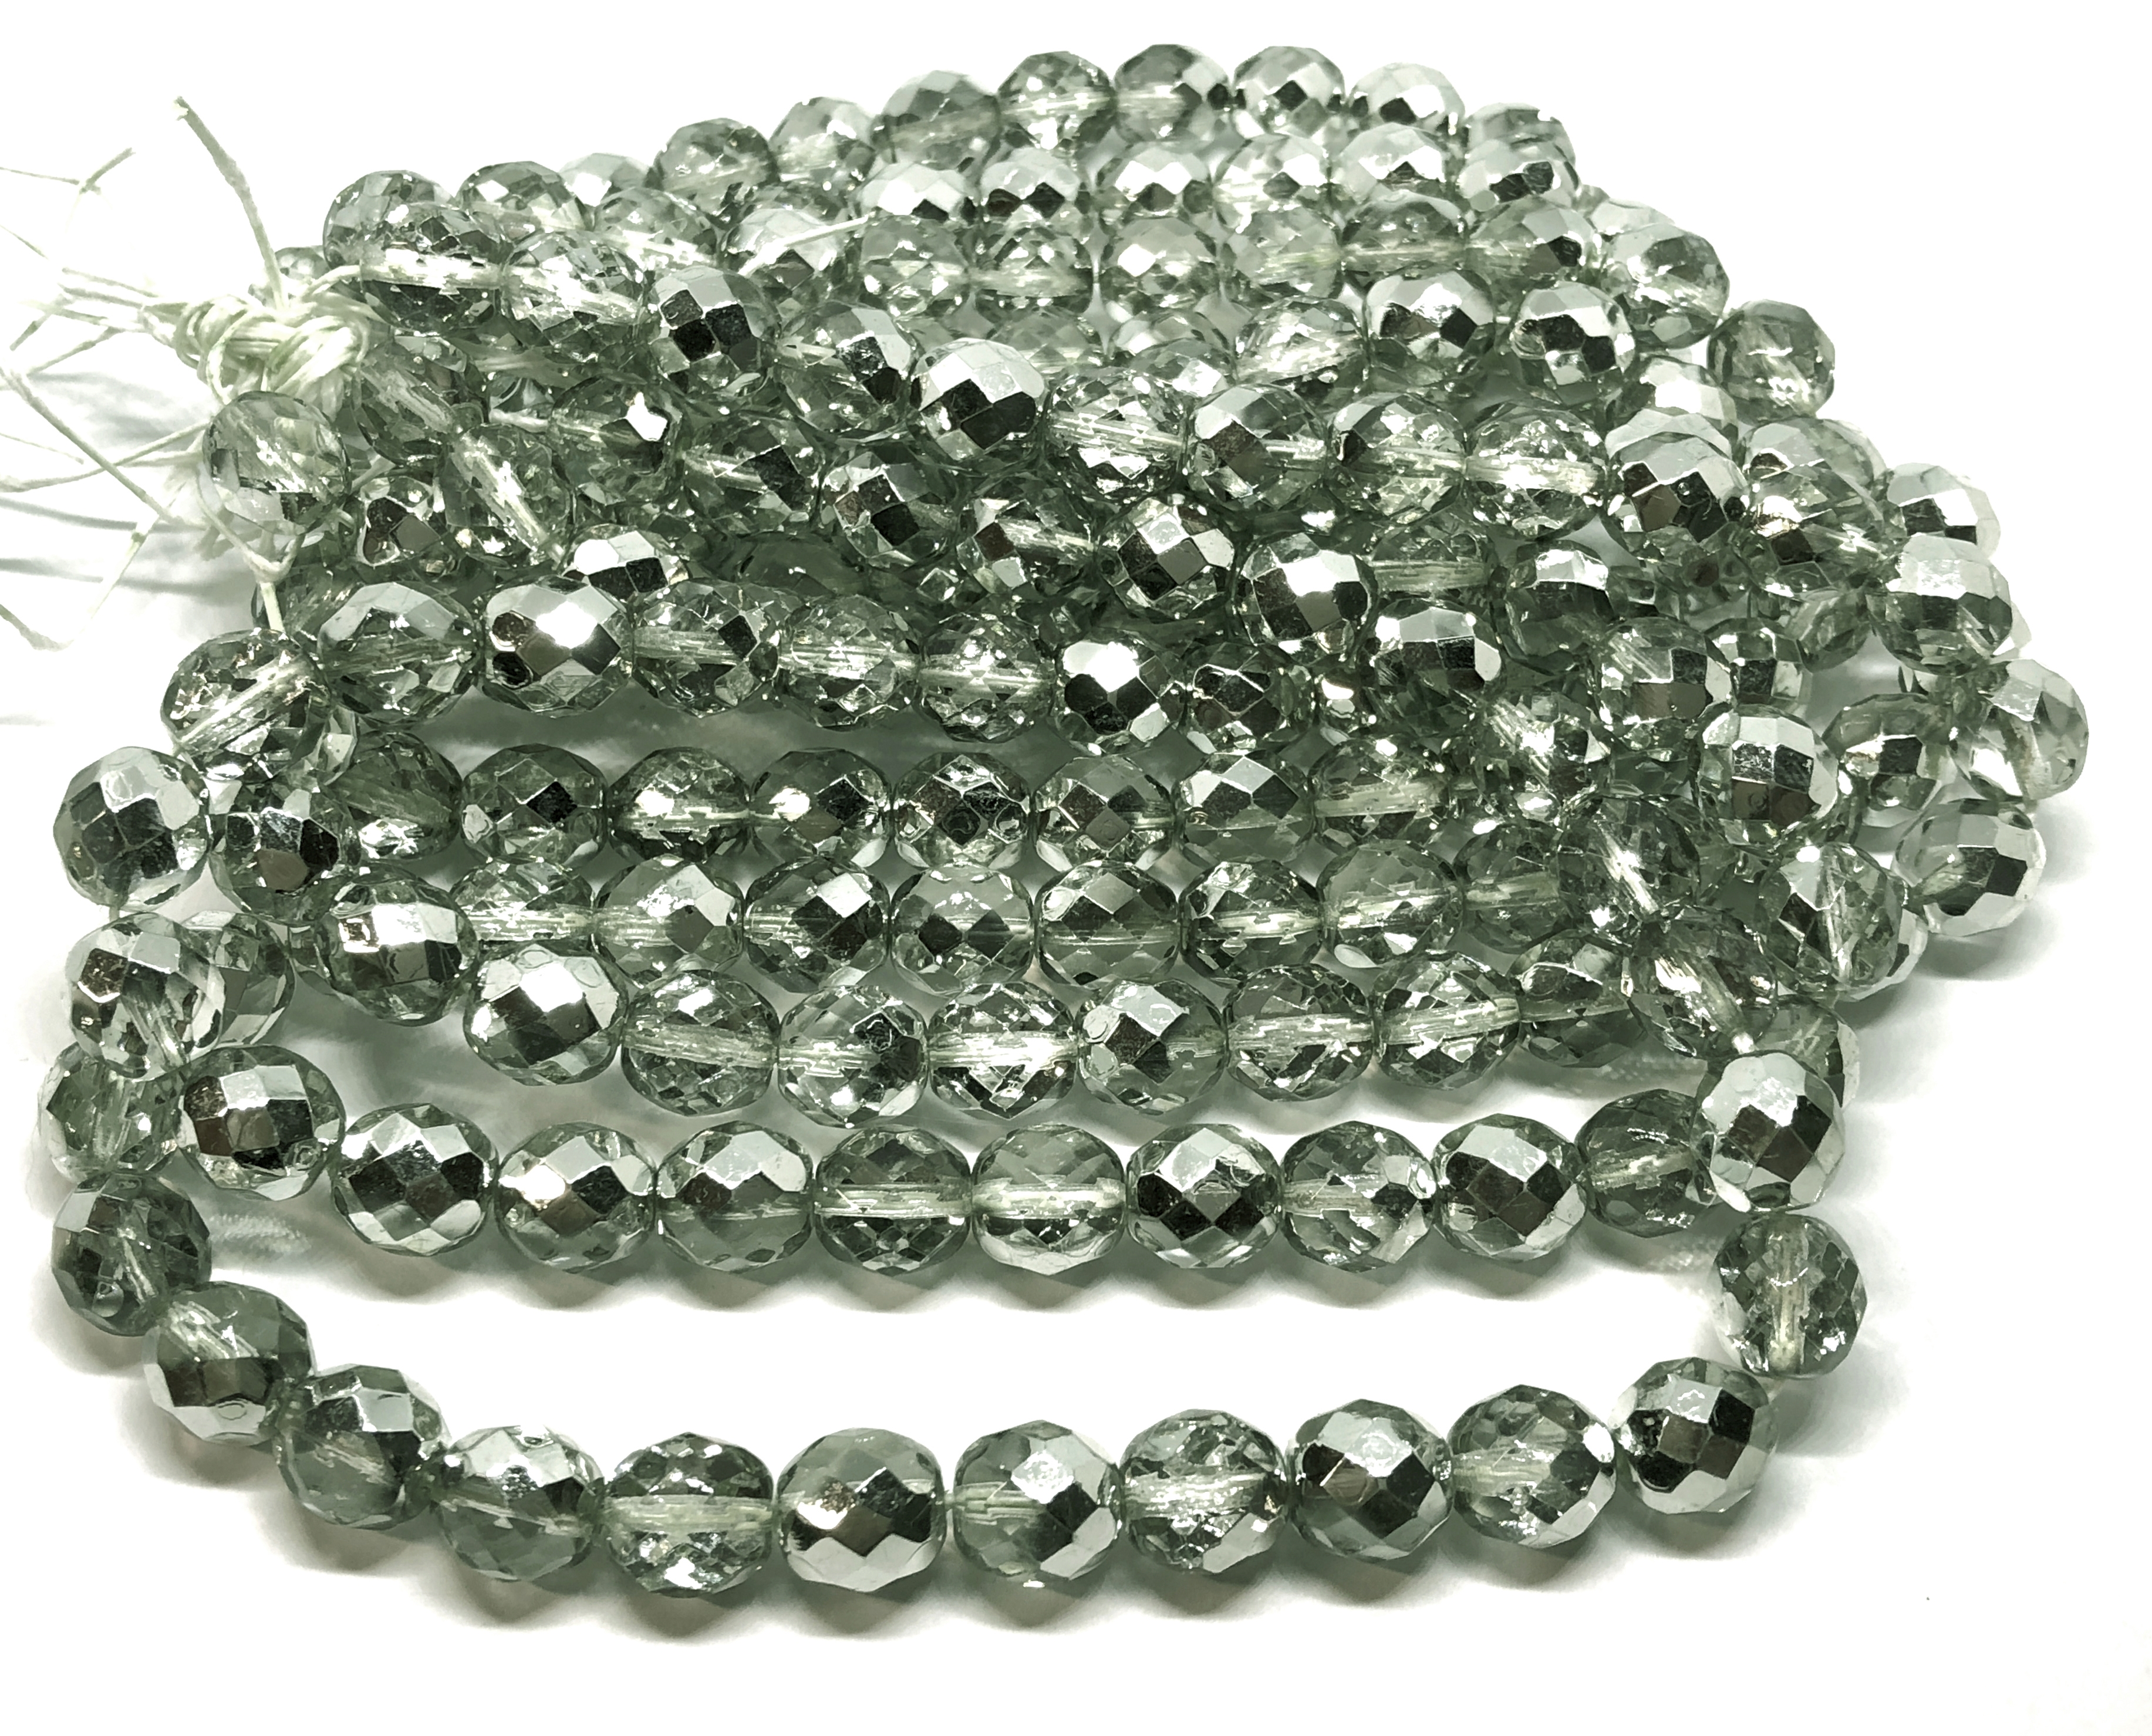 Czech glass beads, fire polished, erinite,05350, erinite silver, glass beads, beading supplies, jewelry making supplies, bsue boutiques, temp strung beads, vintage jewelry supplies, vintage beads, metallic beads, metallic silver blend